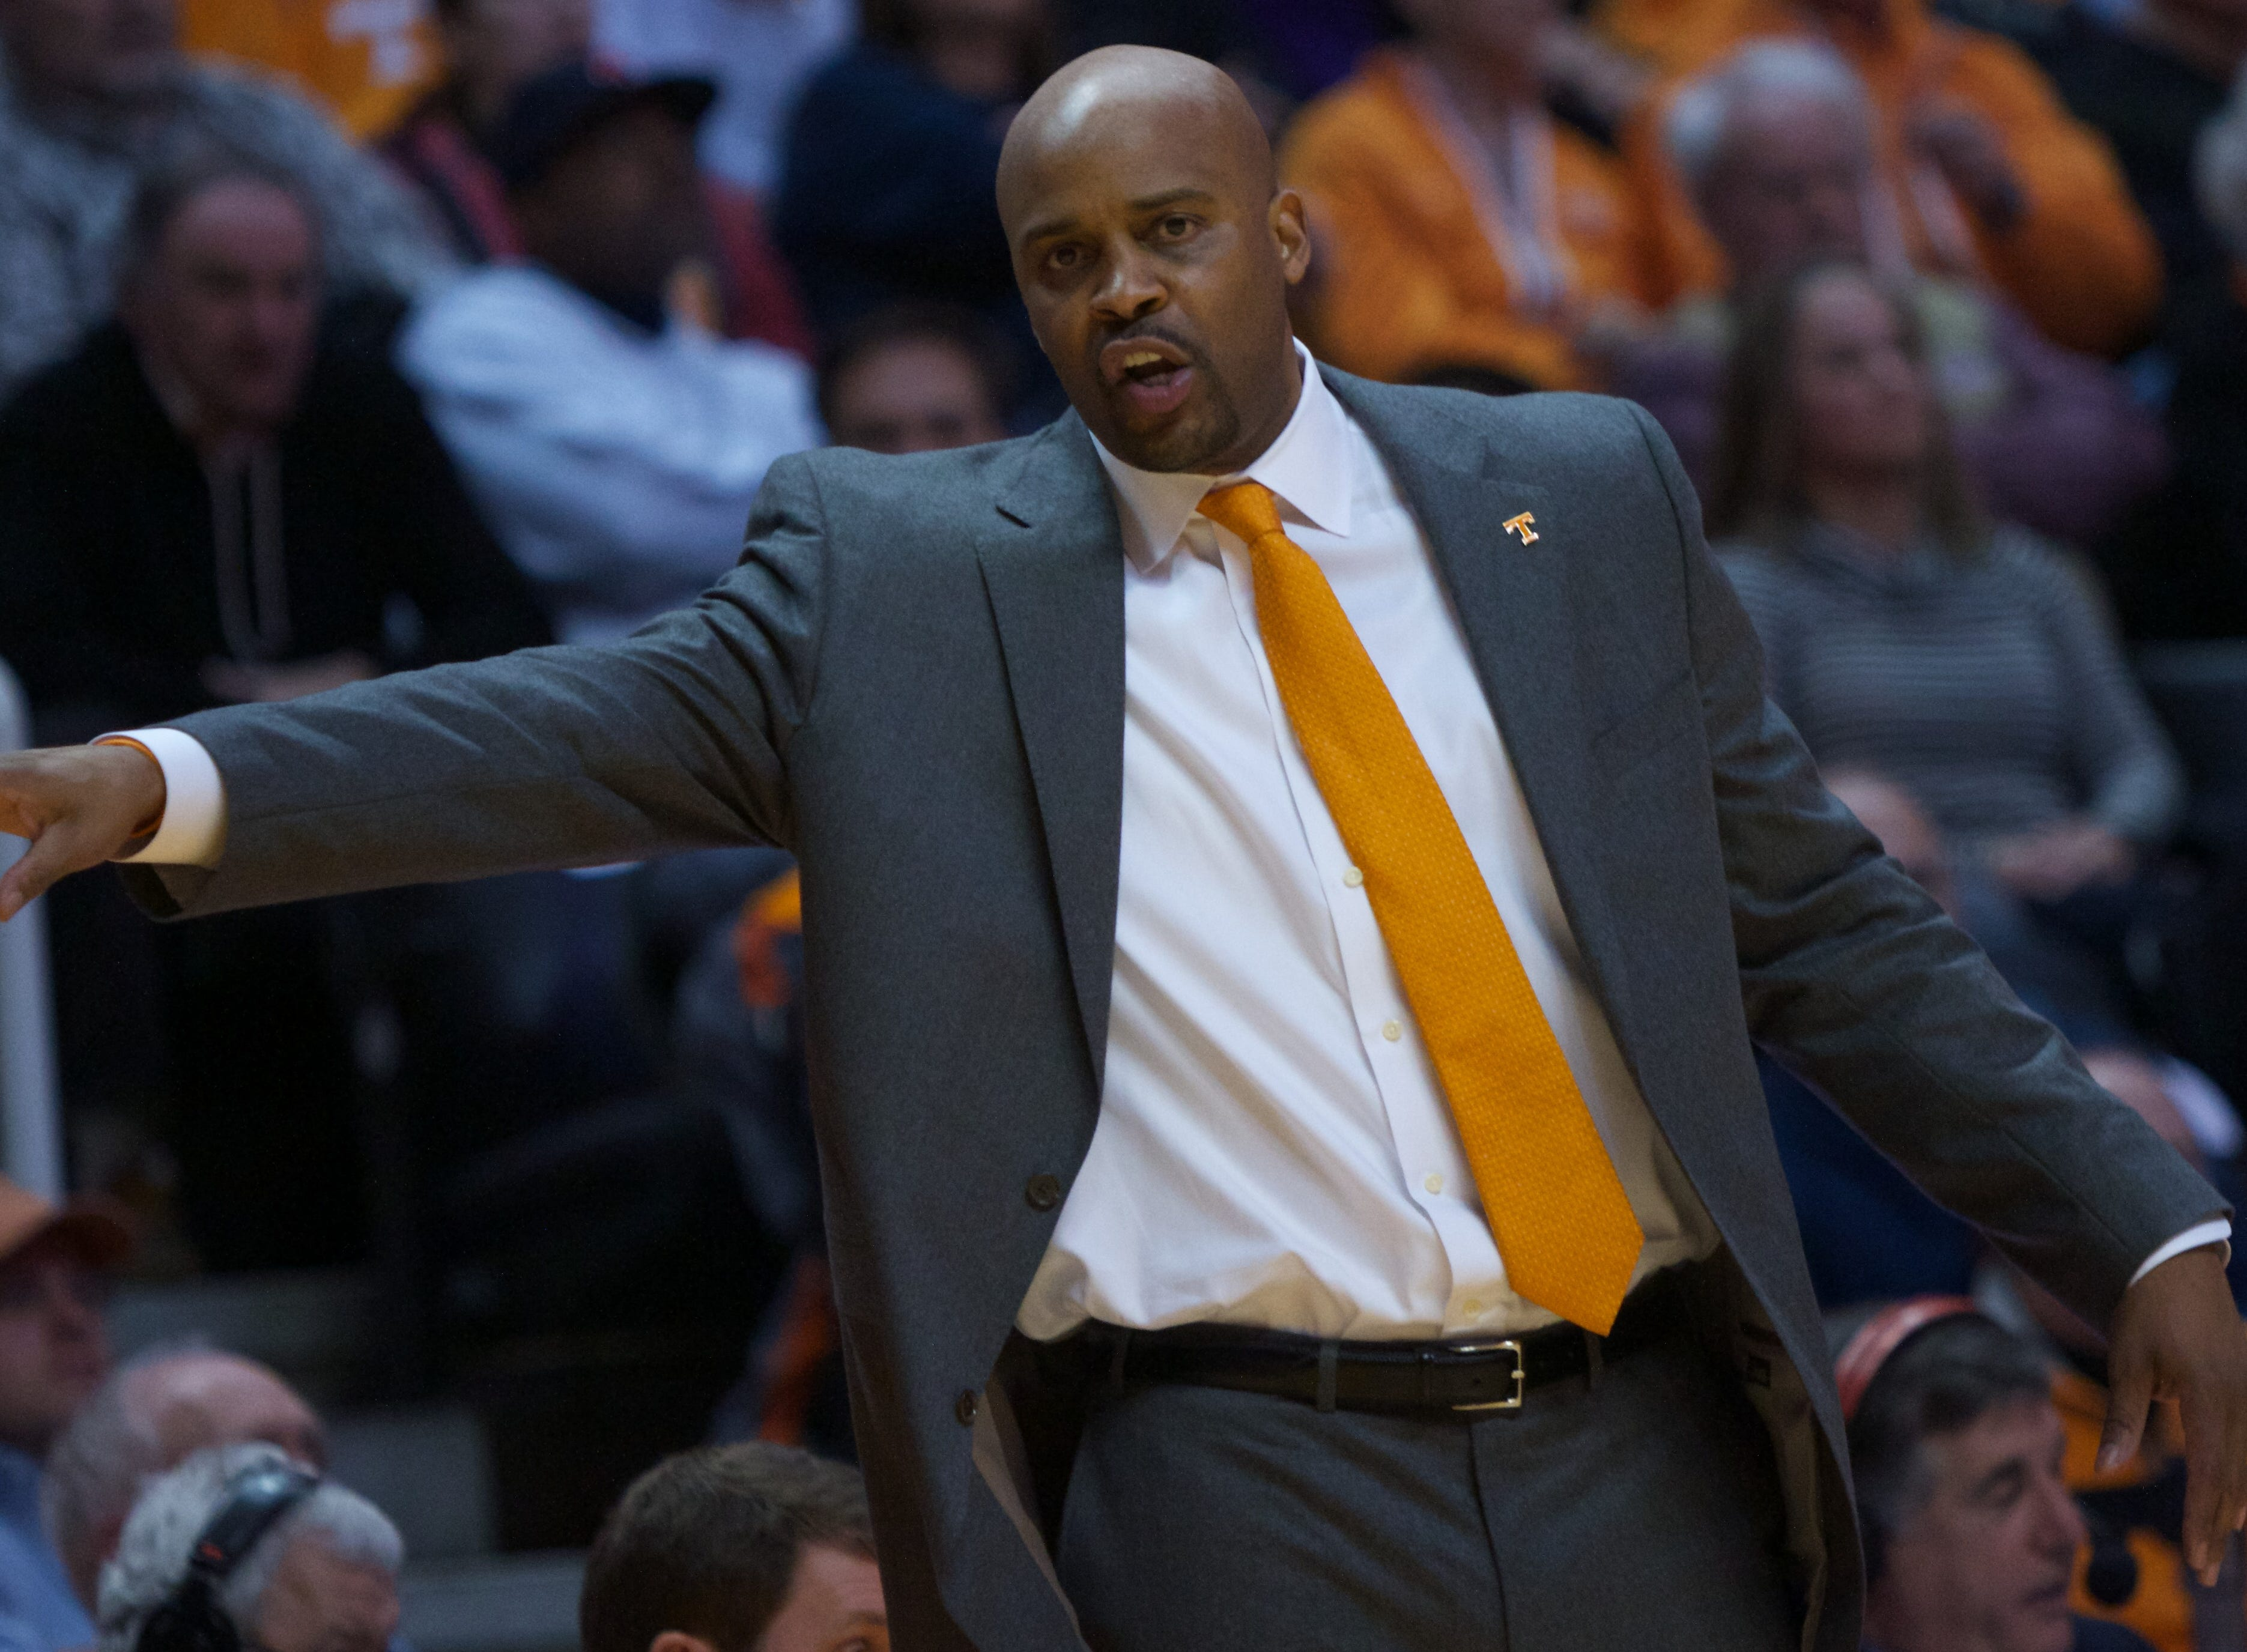 Tennessee head coach Cuonzo Martin gestures to his players in the game against Xavier in the second half of an NCAA college basketball game on Saturday, Dec. 29, 2012, in Knoxville, Tenn. Tennessee defeated Xavier 51-47.